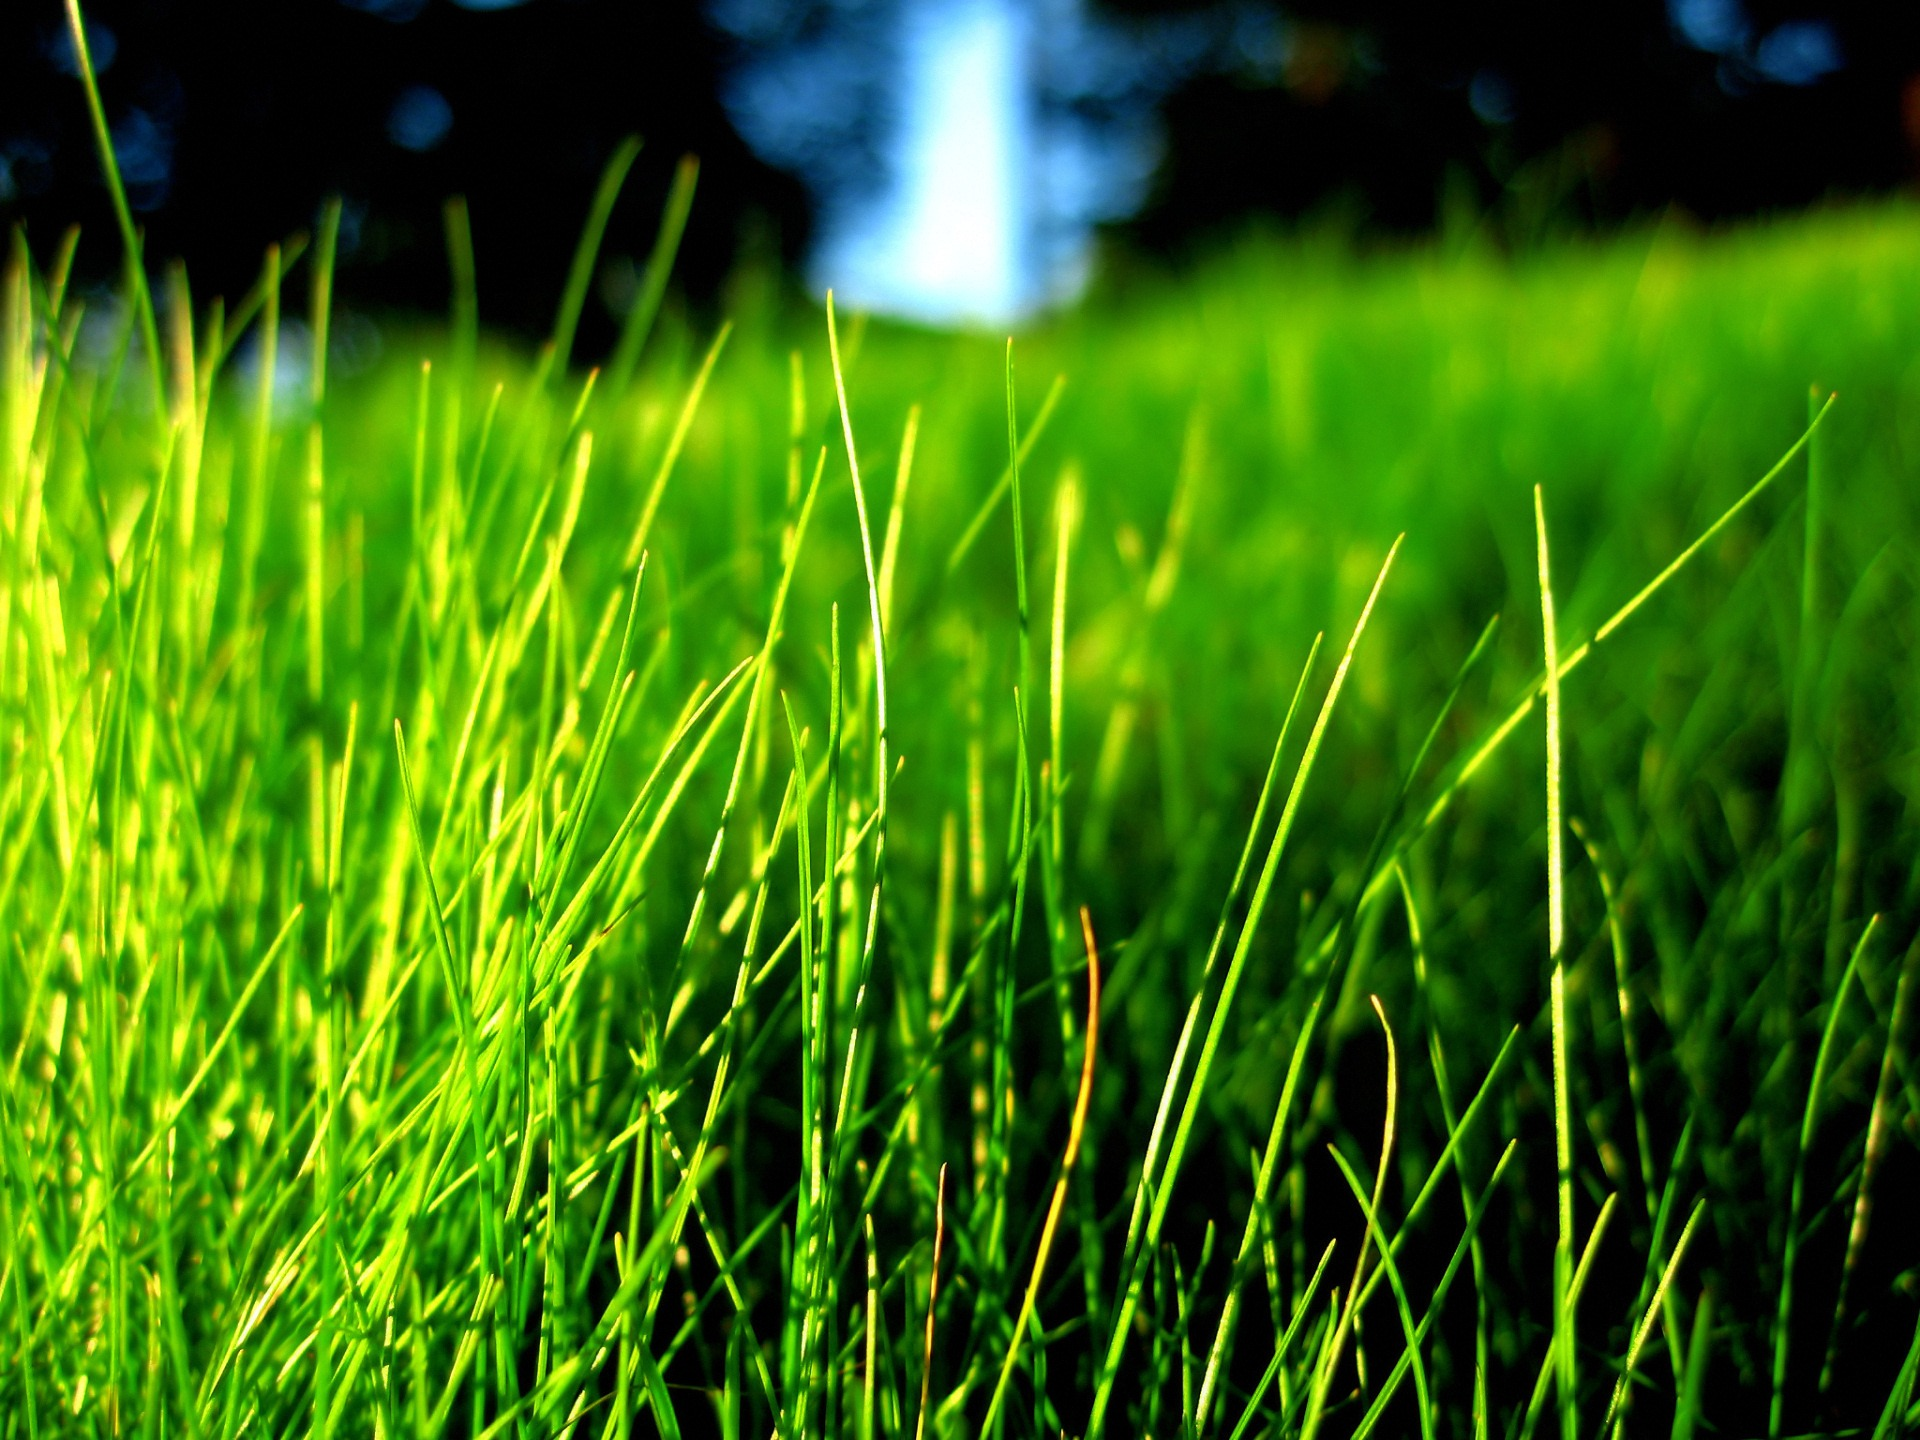 Wallpaper download in nature - Grass Wallpaper Plants Nature